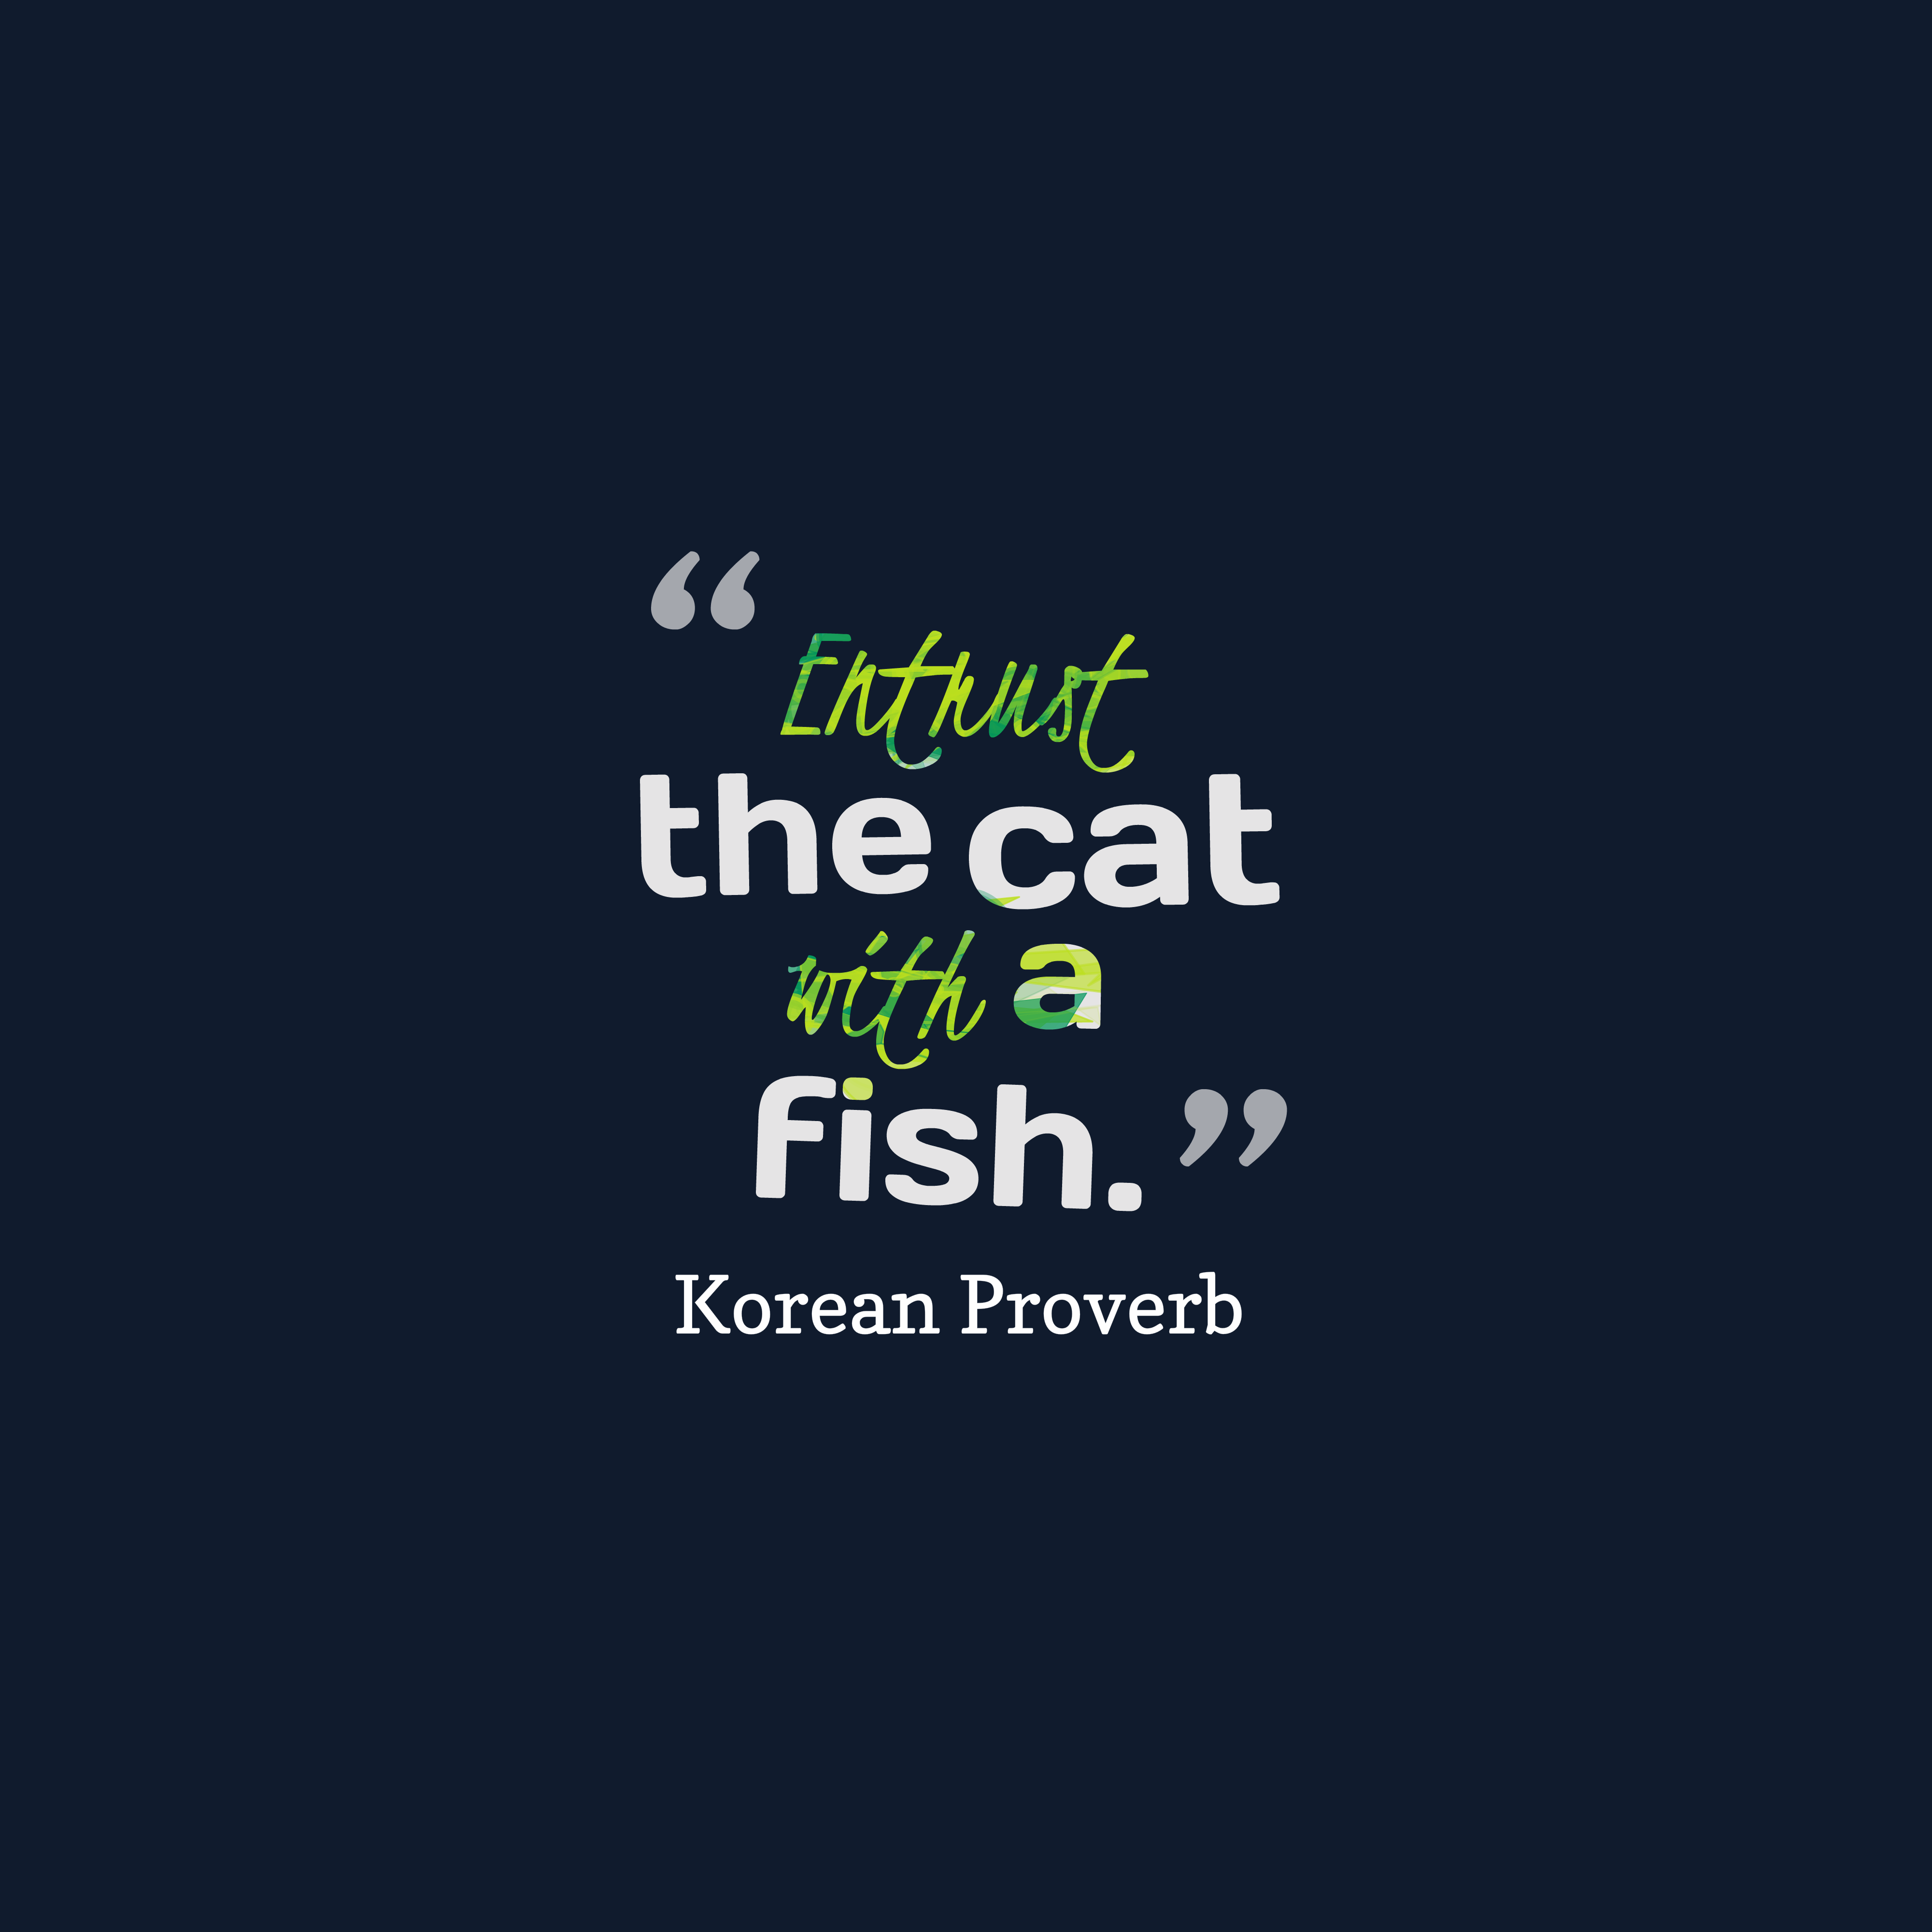 Quotes image of Entrust the cat with a fish.